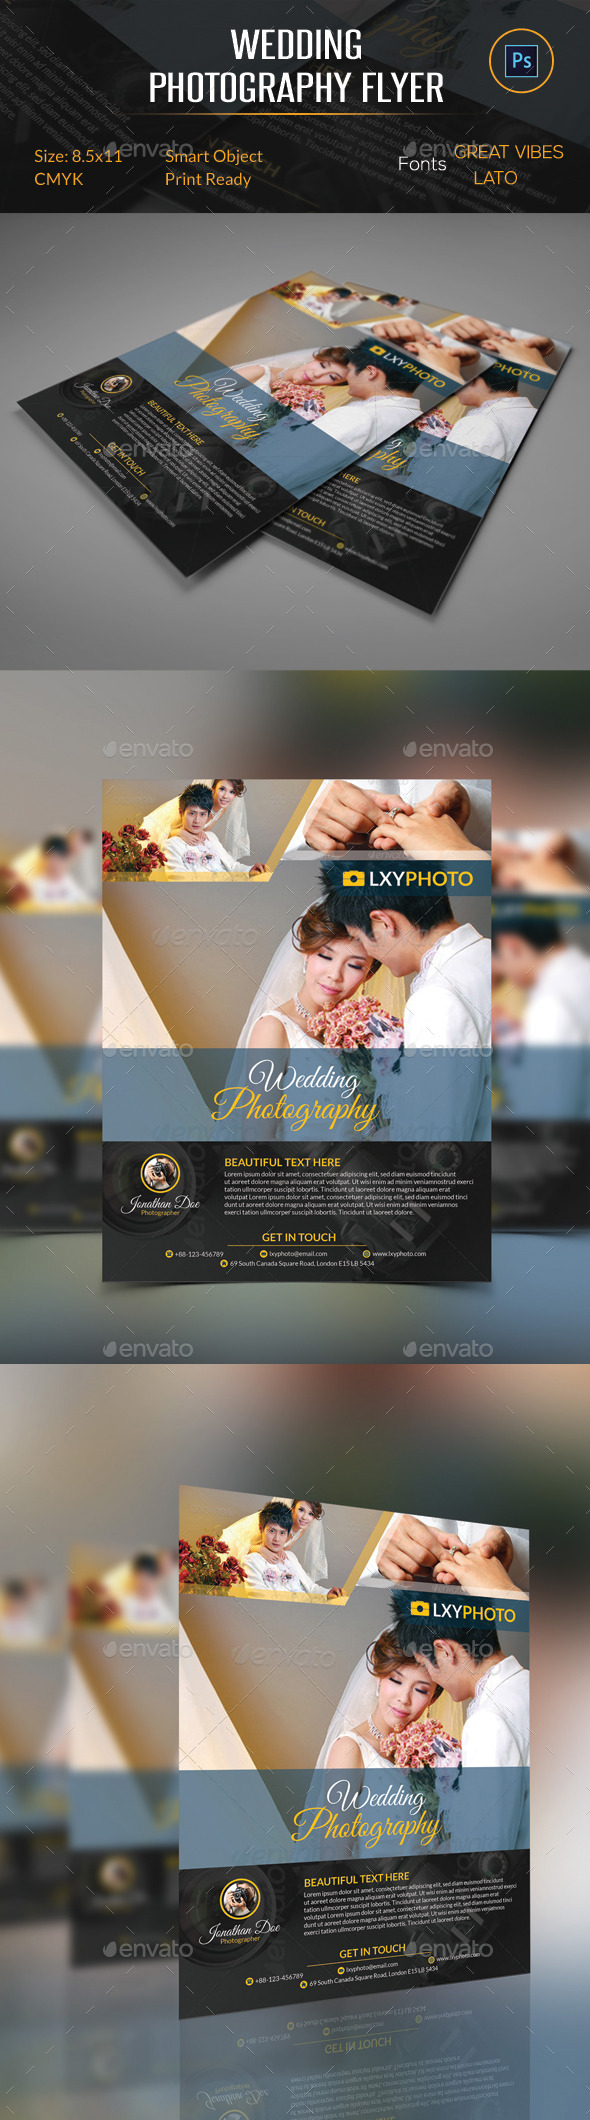 GraphicRiver Wedding Photography Flyer 10255616